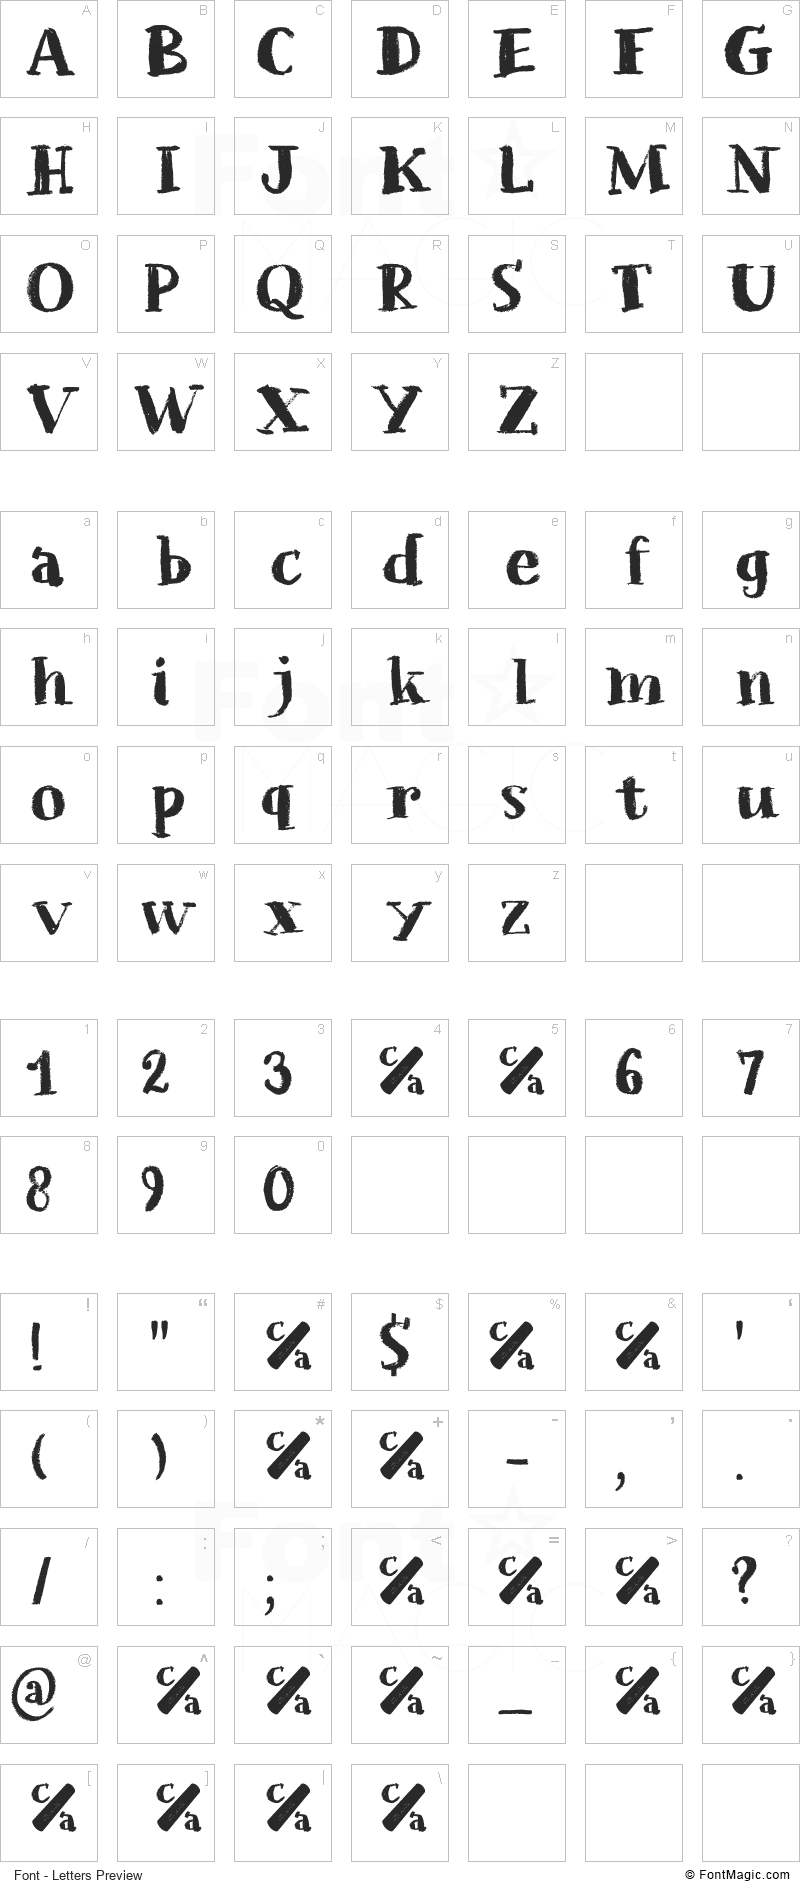 Chalkaholic Font - All Latters Preview Chart